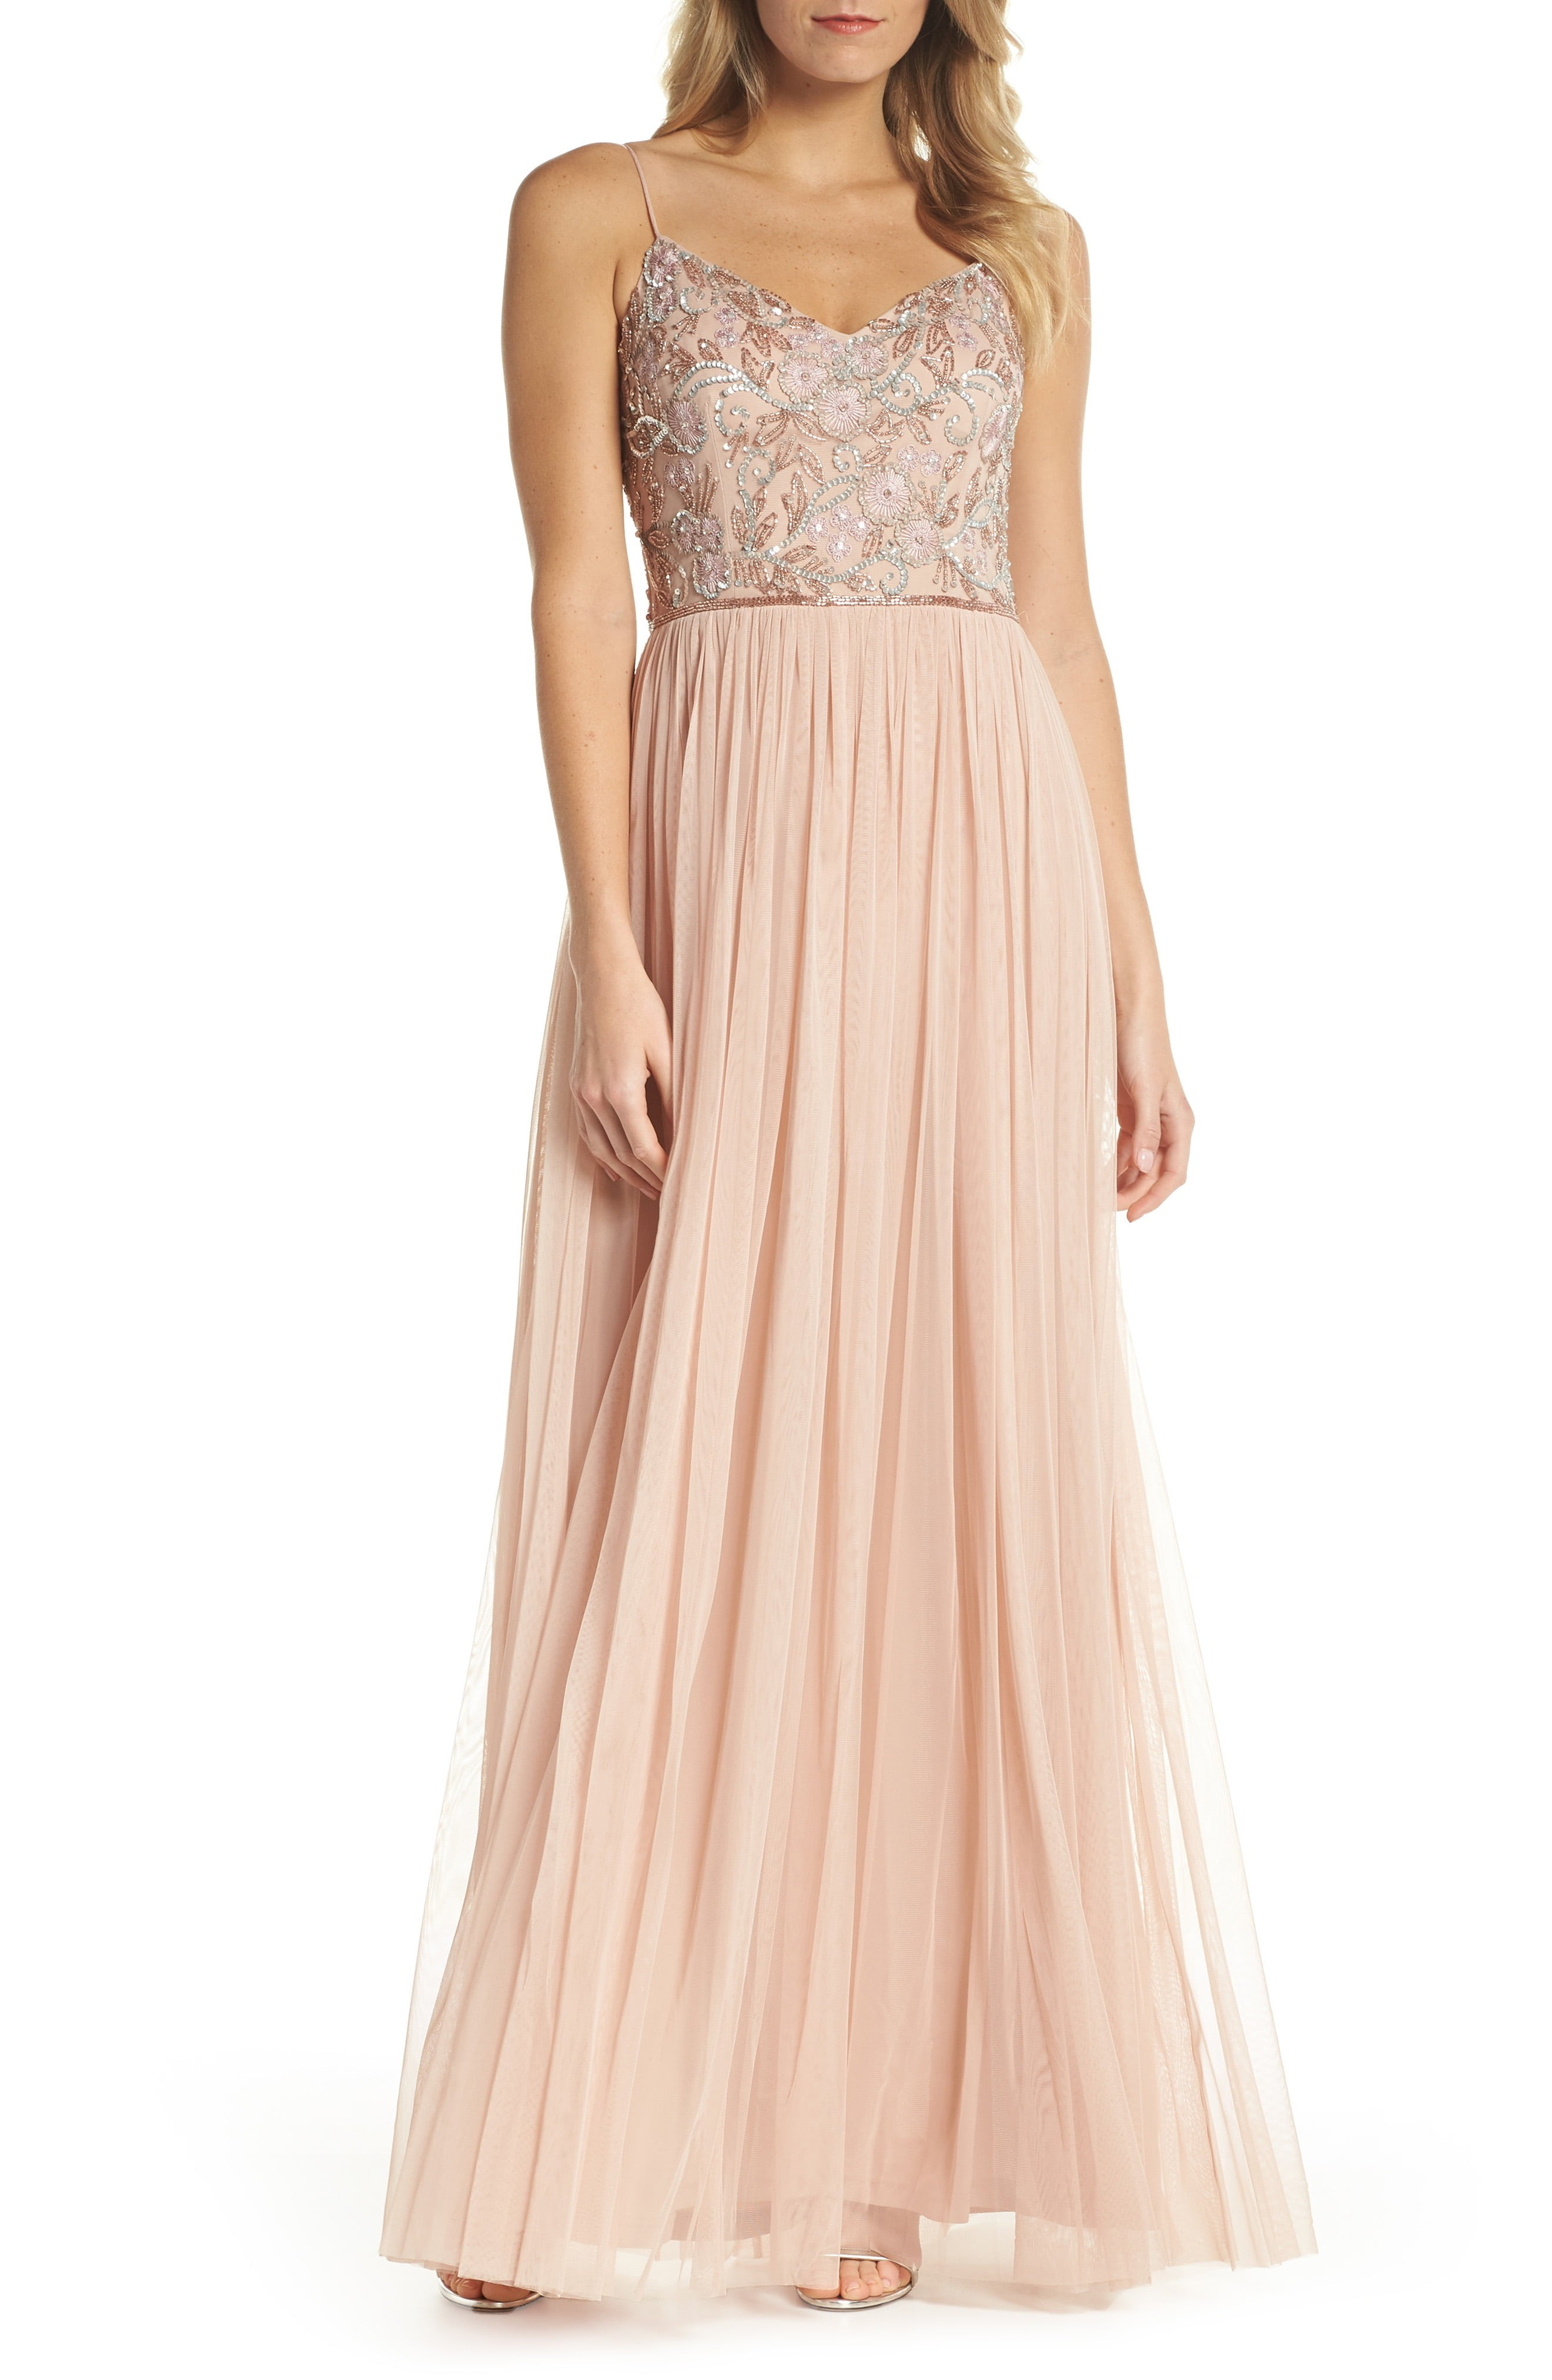 Blush and pink bridesmaid dresses for weddings pink bridesmaid dresses for weddings ombrellifo Images